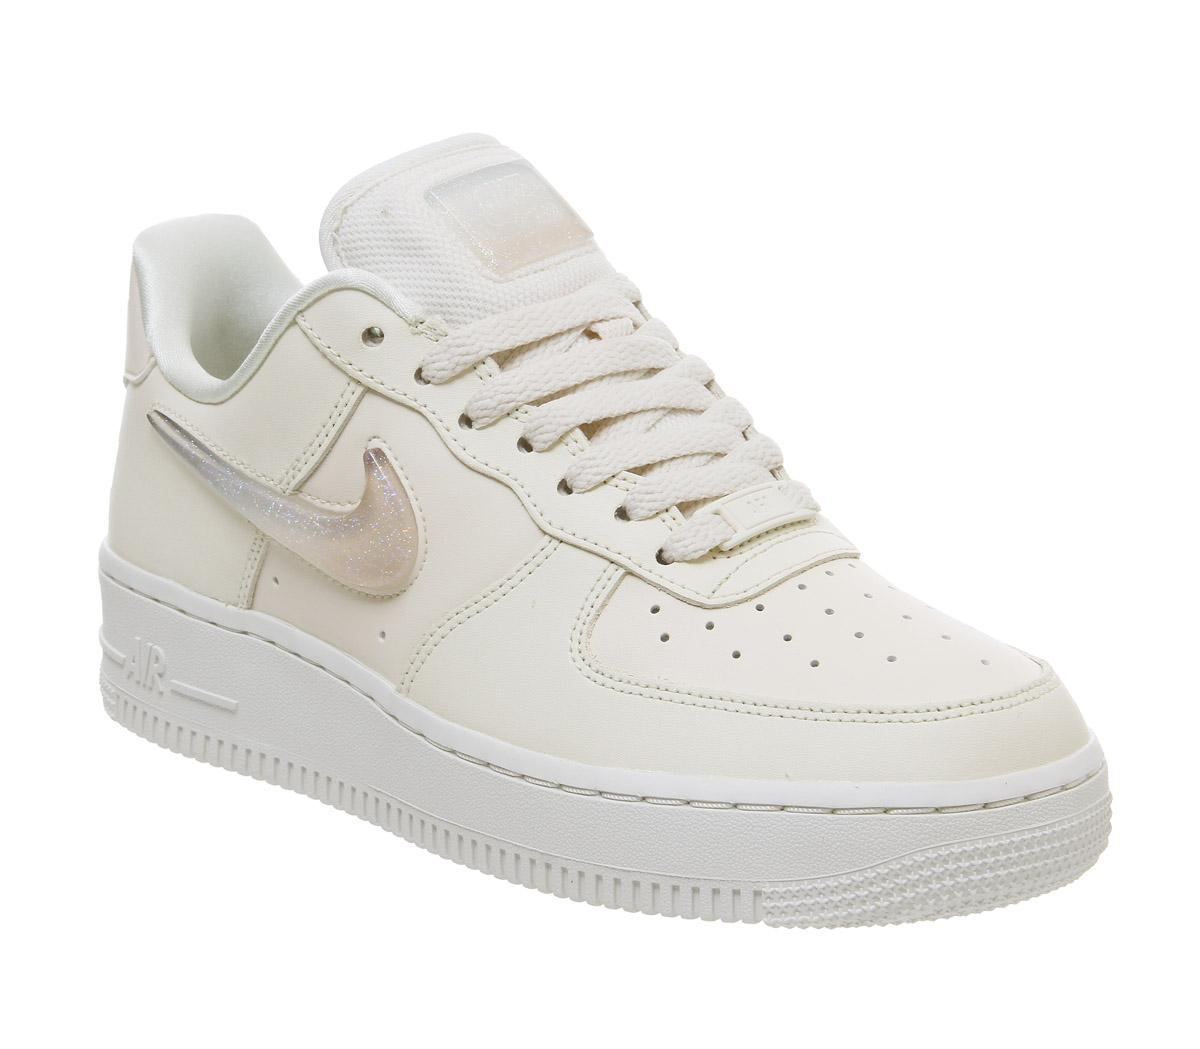 48935a175a5 Nike Air Force 1 07 Trainers Pale Ivory Summit White Guava Ice ...